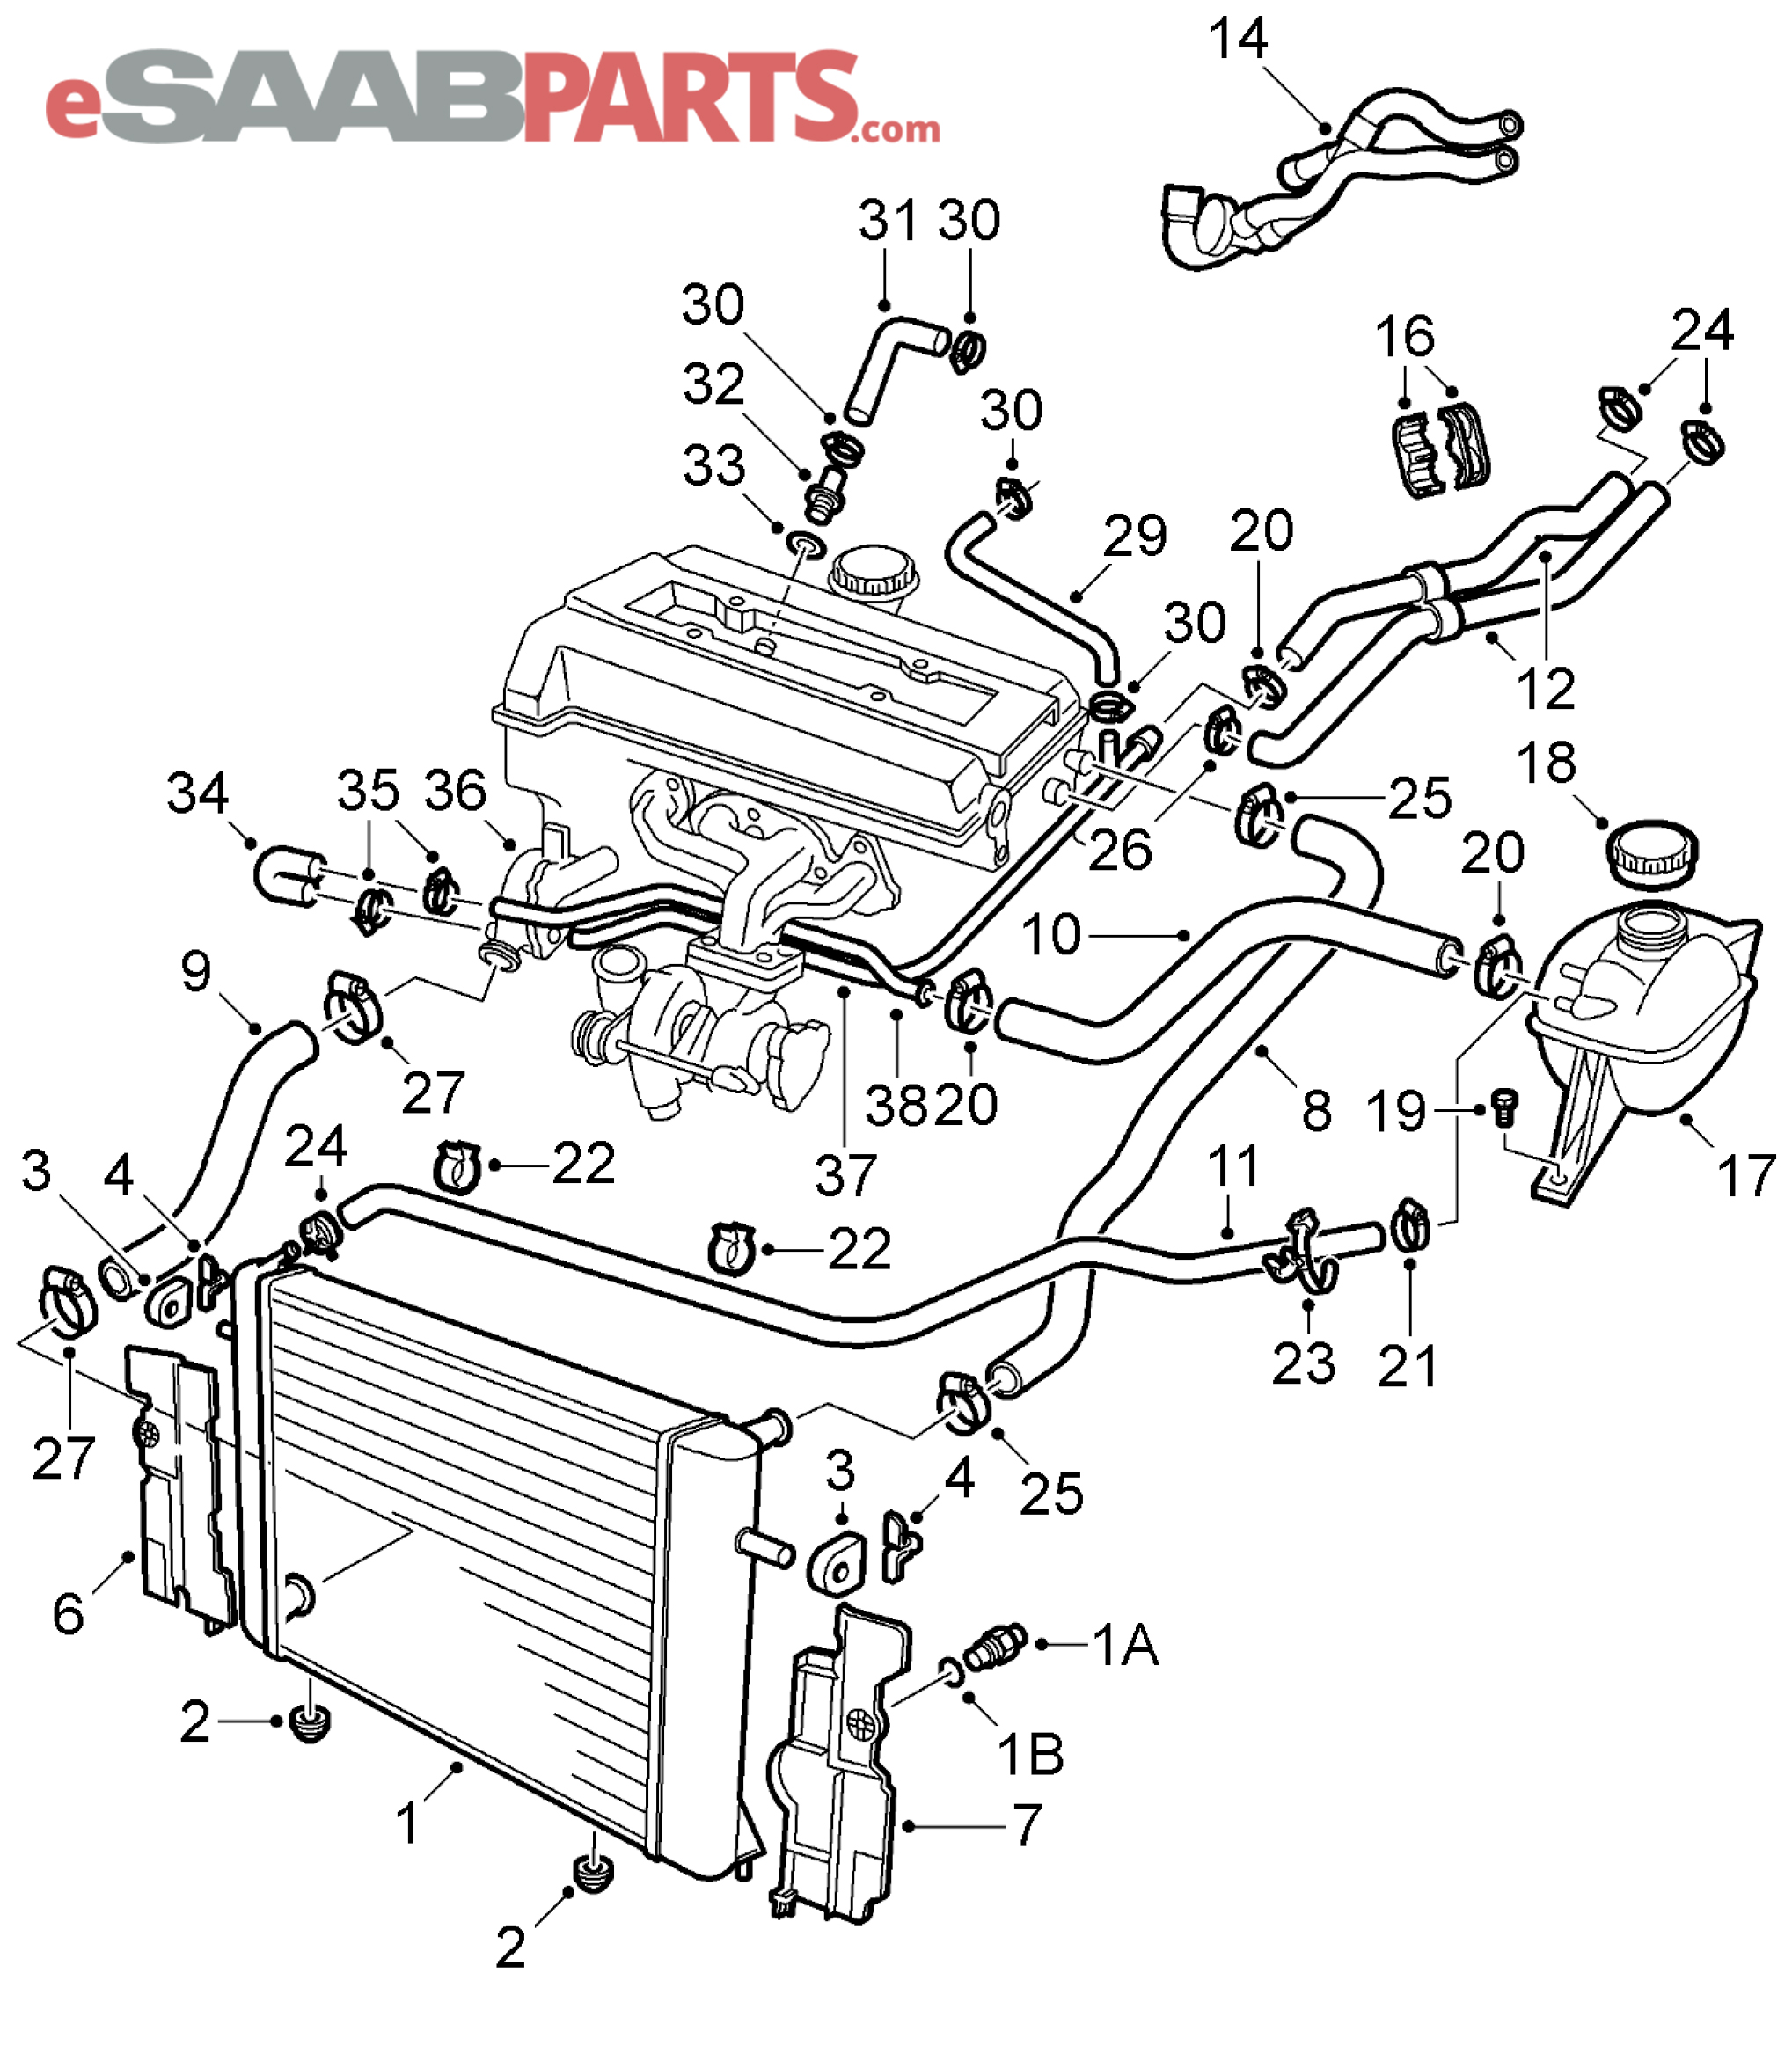 saab 9 5 cooling parts diagram